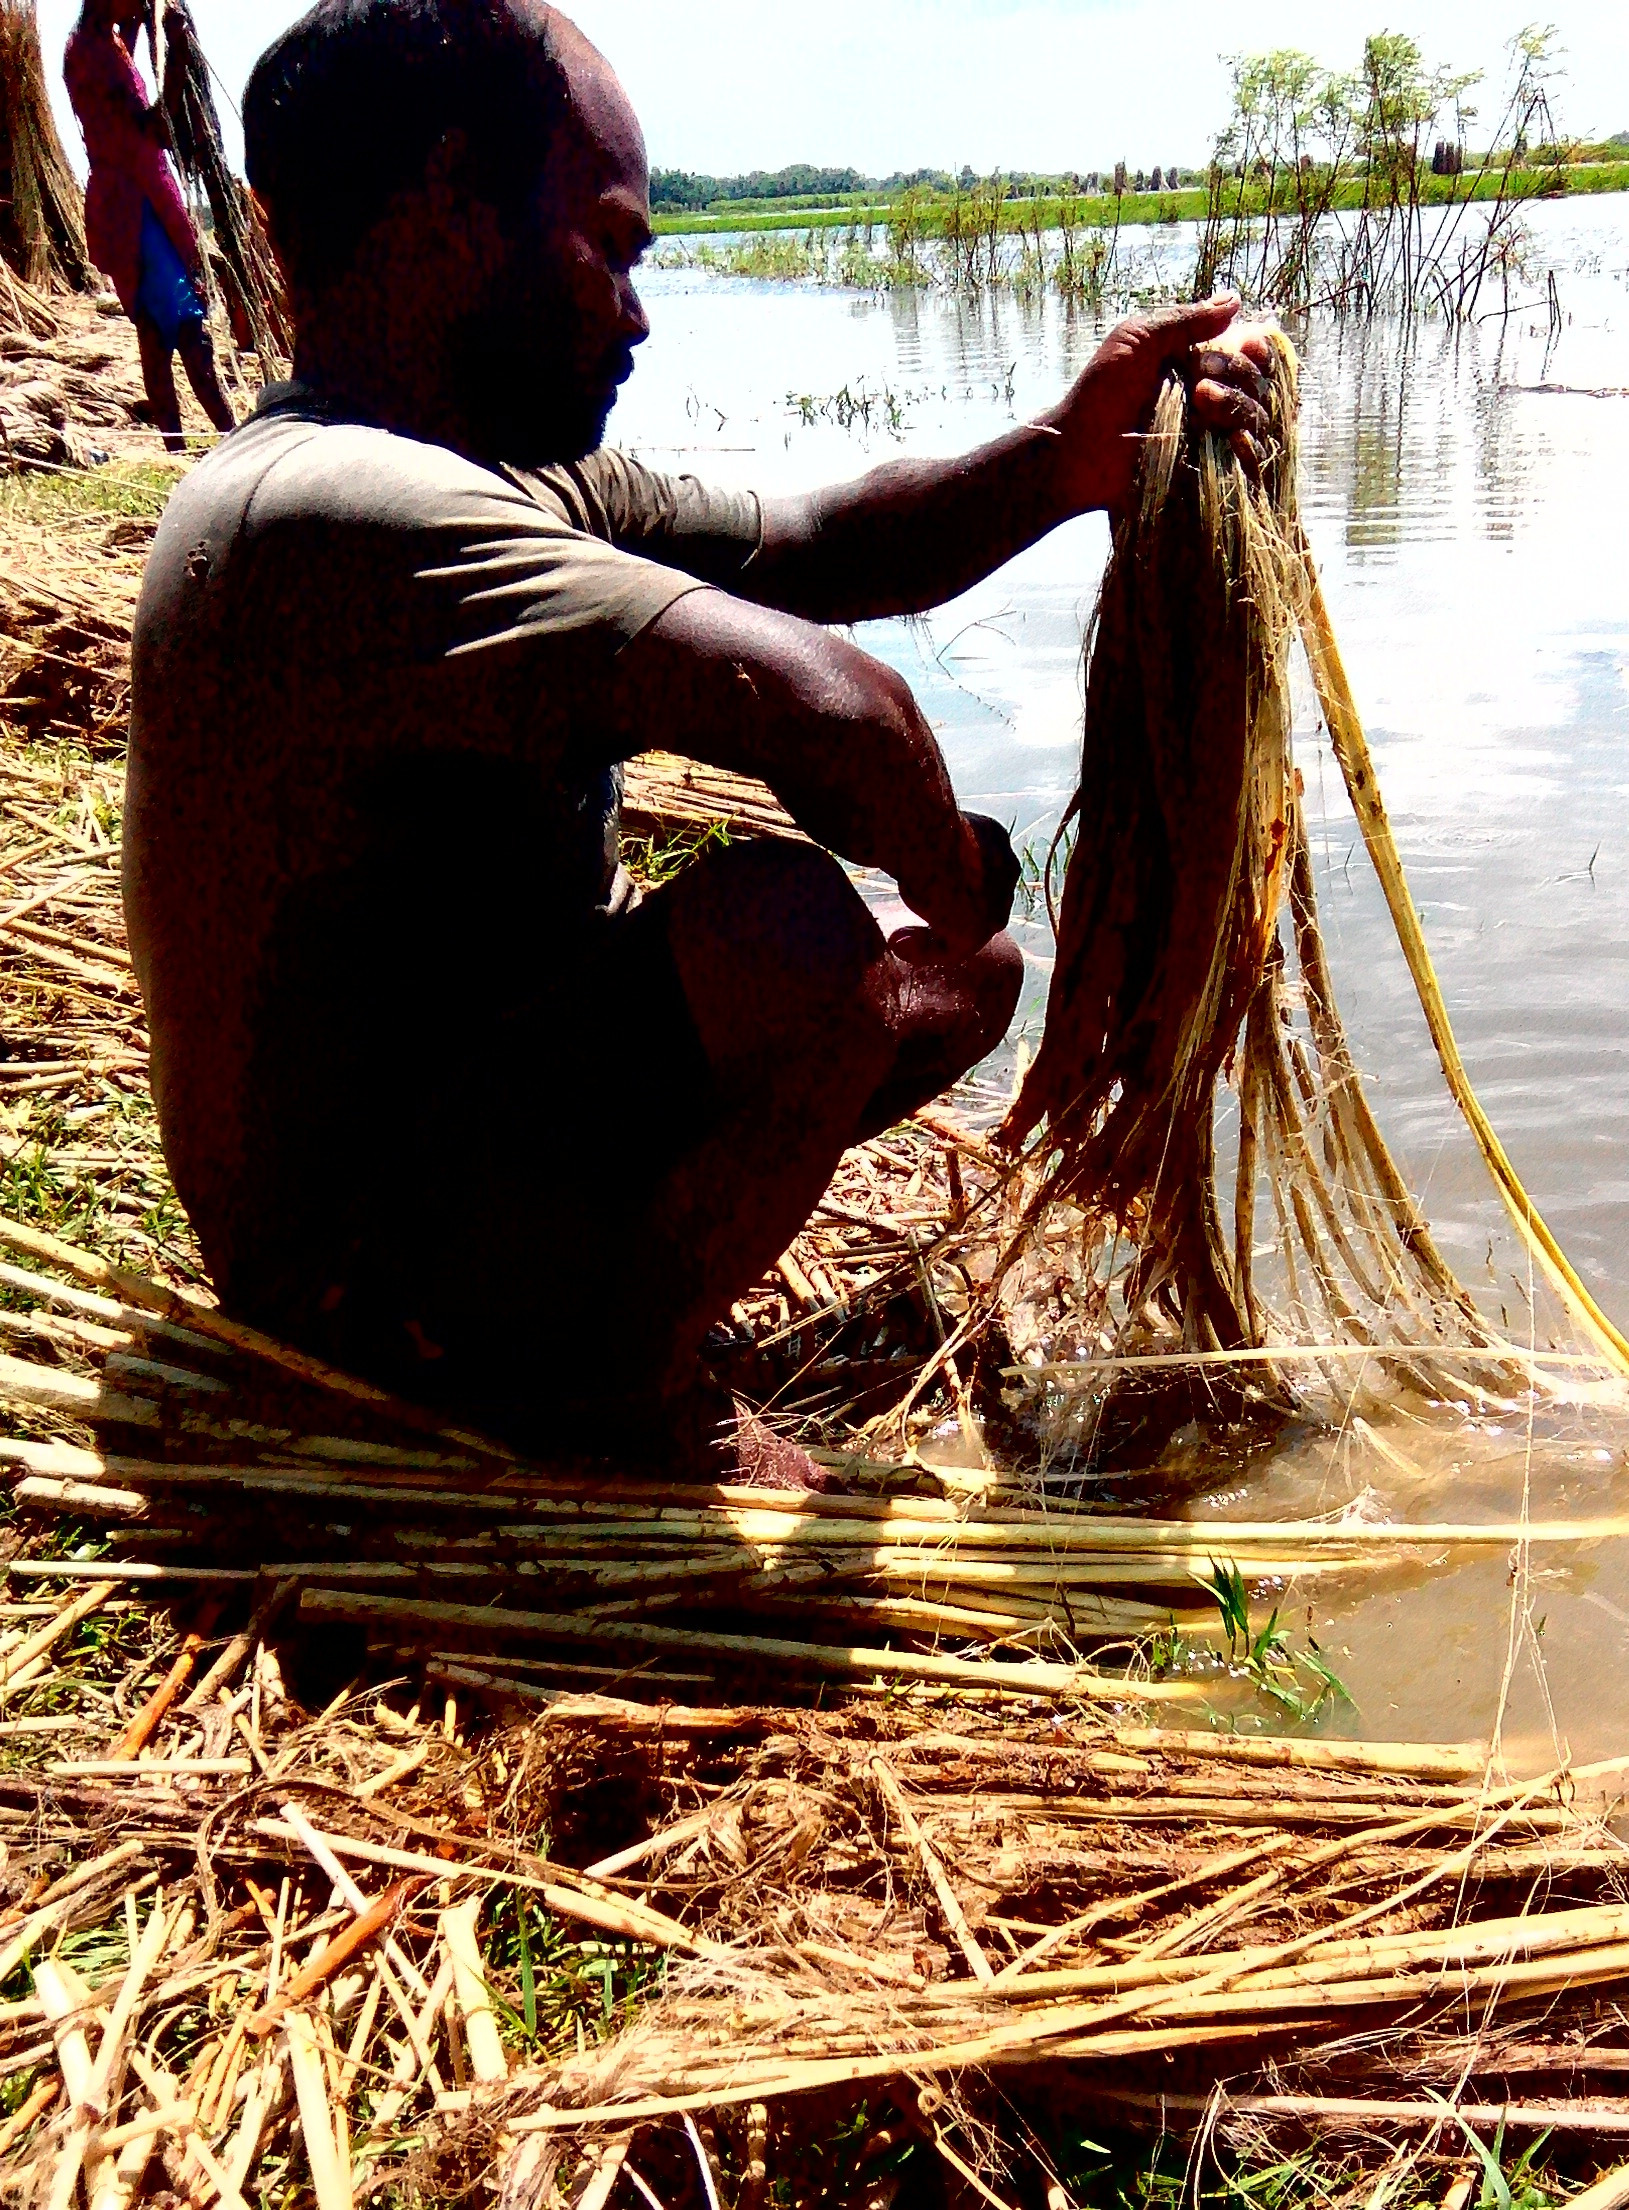 A farmer harvests jute in a village. Credit: Zaheeb Ajmal